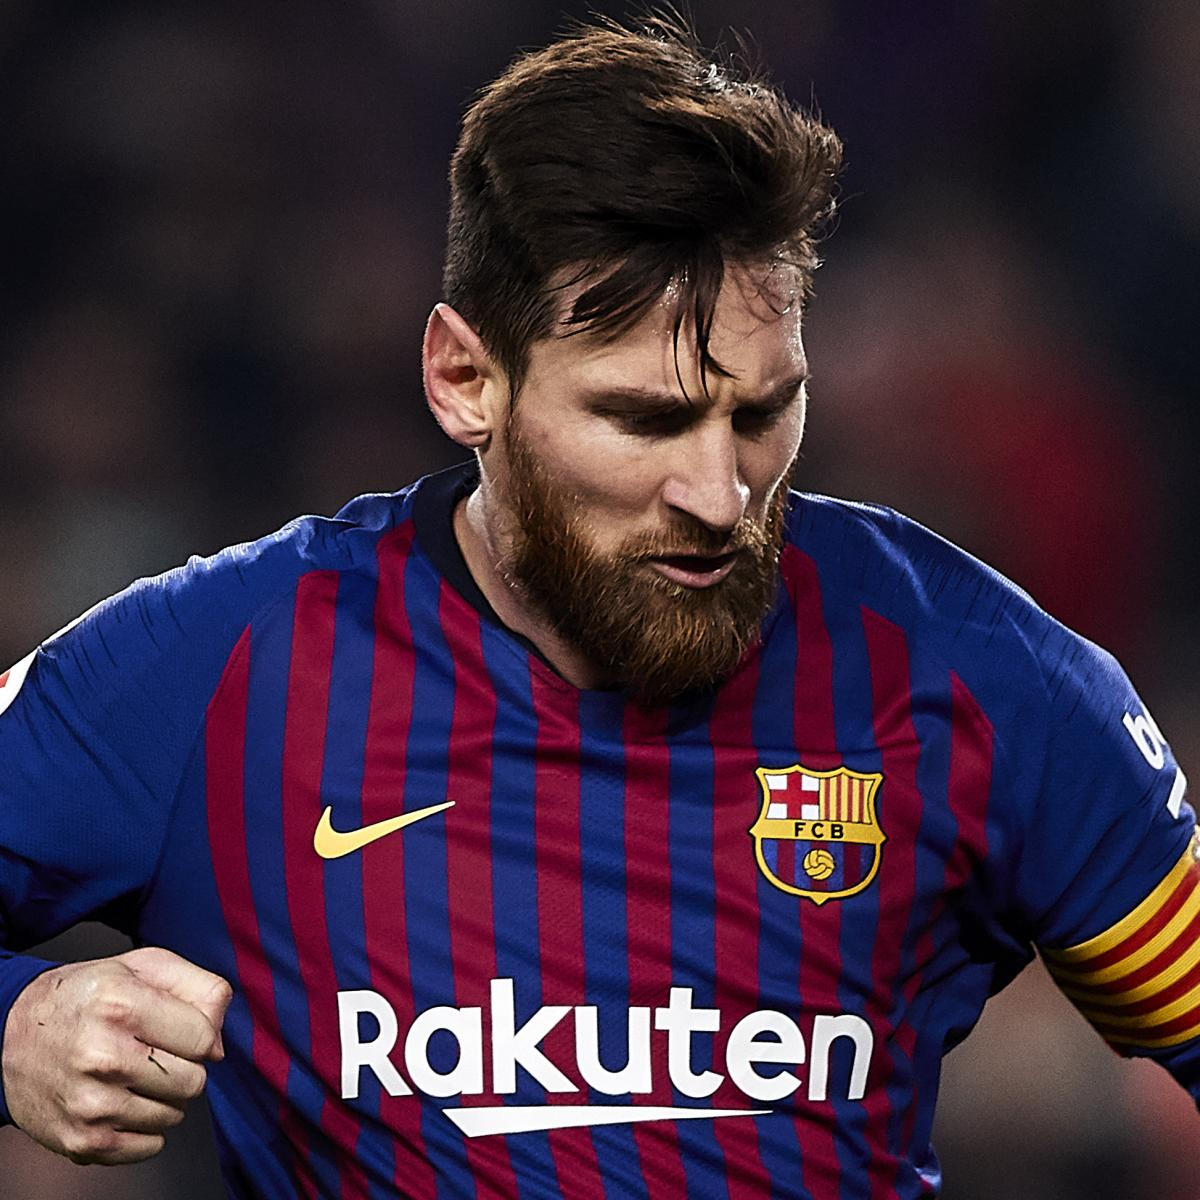 Photo of Messi wins legal battle to retain logo trademark